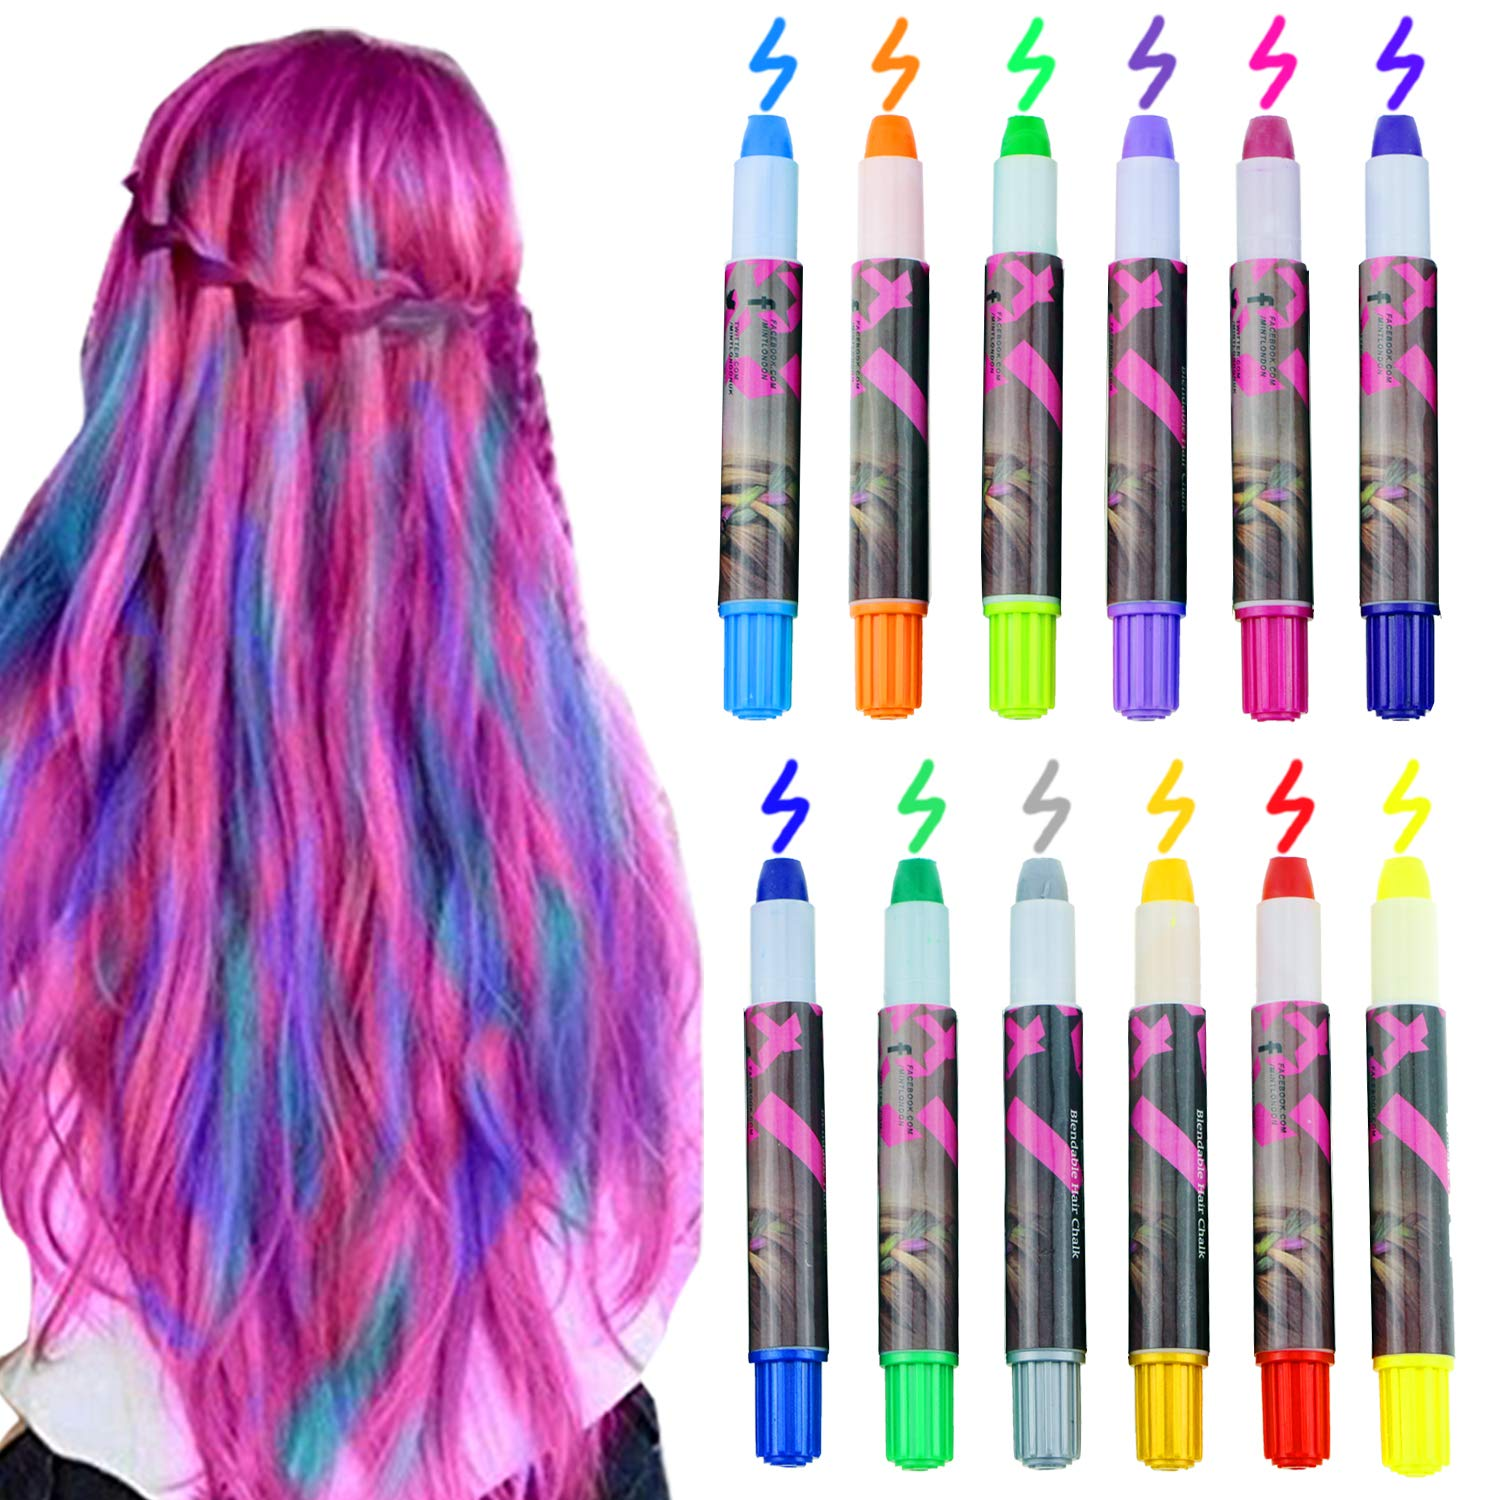 Amazon Com Bearbro 12 Color Temporary Hair Chalk Gift Set For Kids Colorful Temporary Portable Hair Coloring Chalk Pens Christmas Birthday Gifts Present For Girls 12 Color Beauty